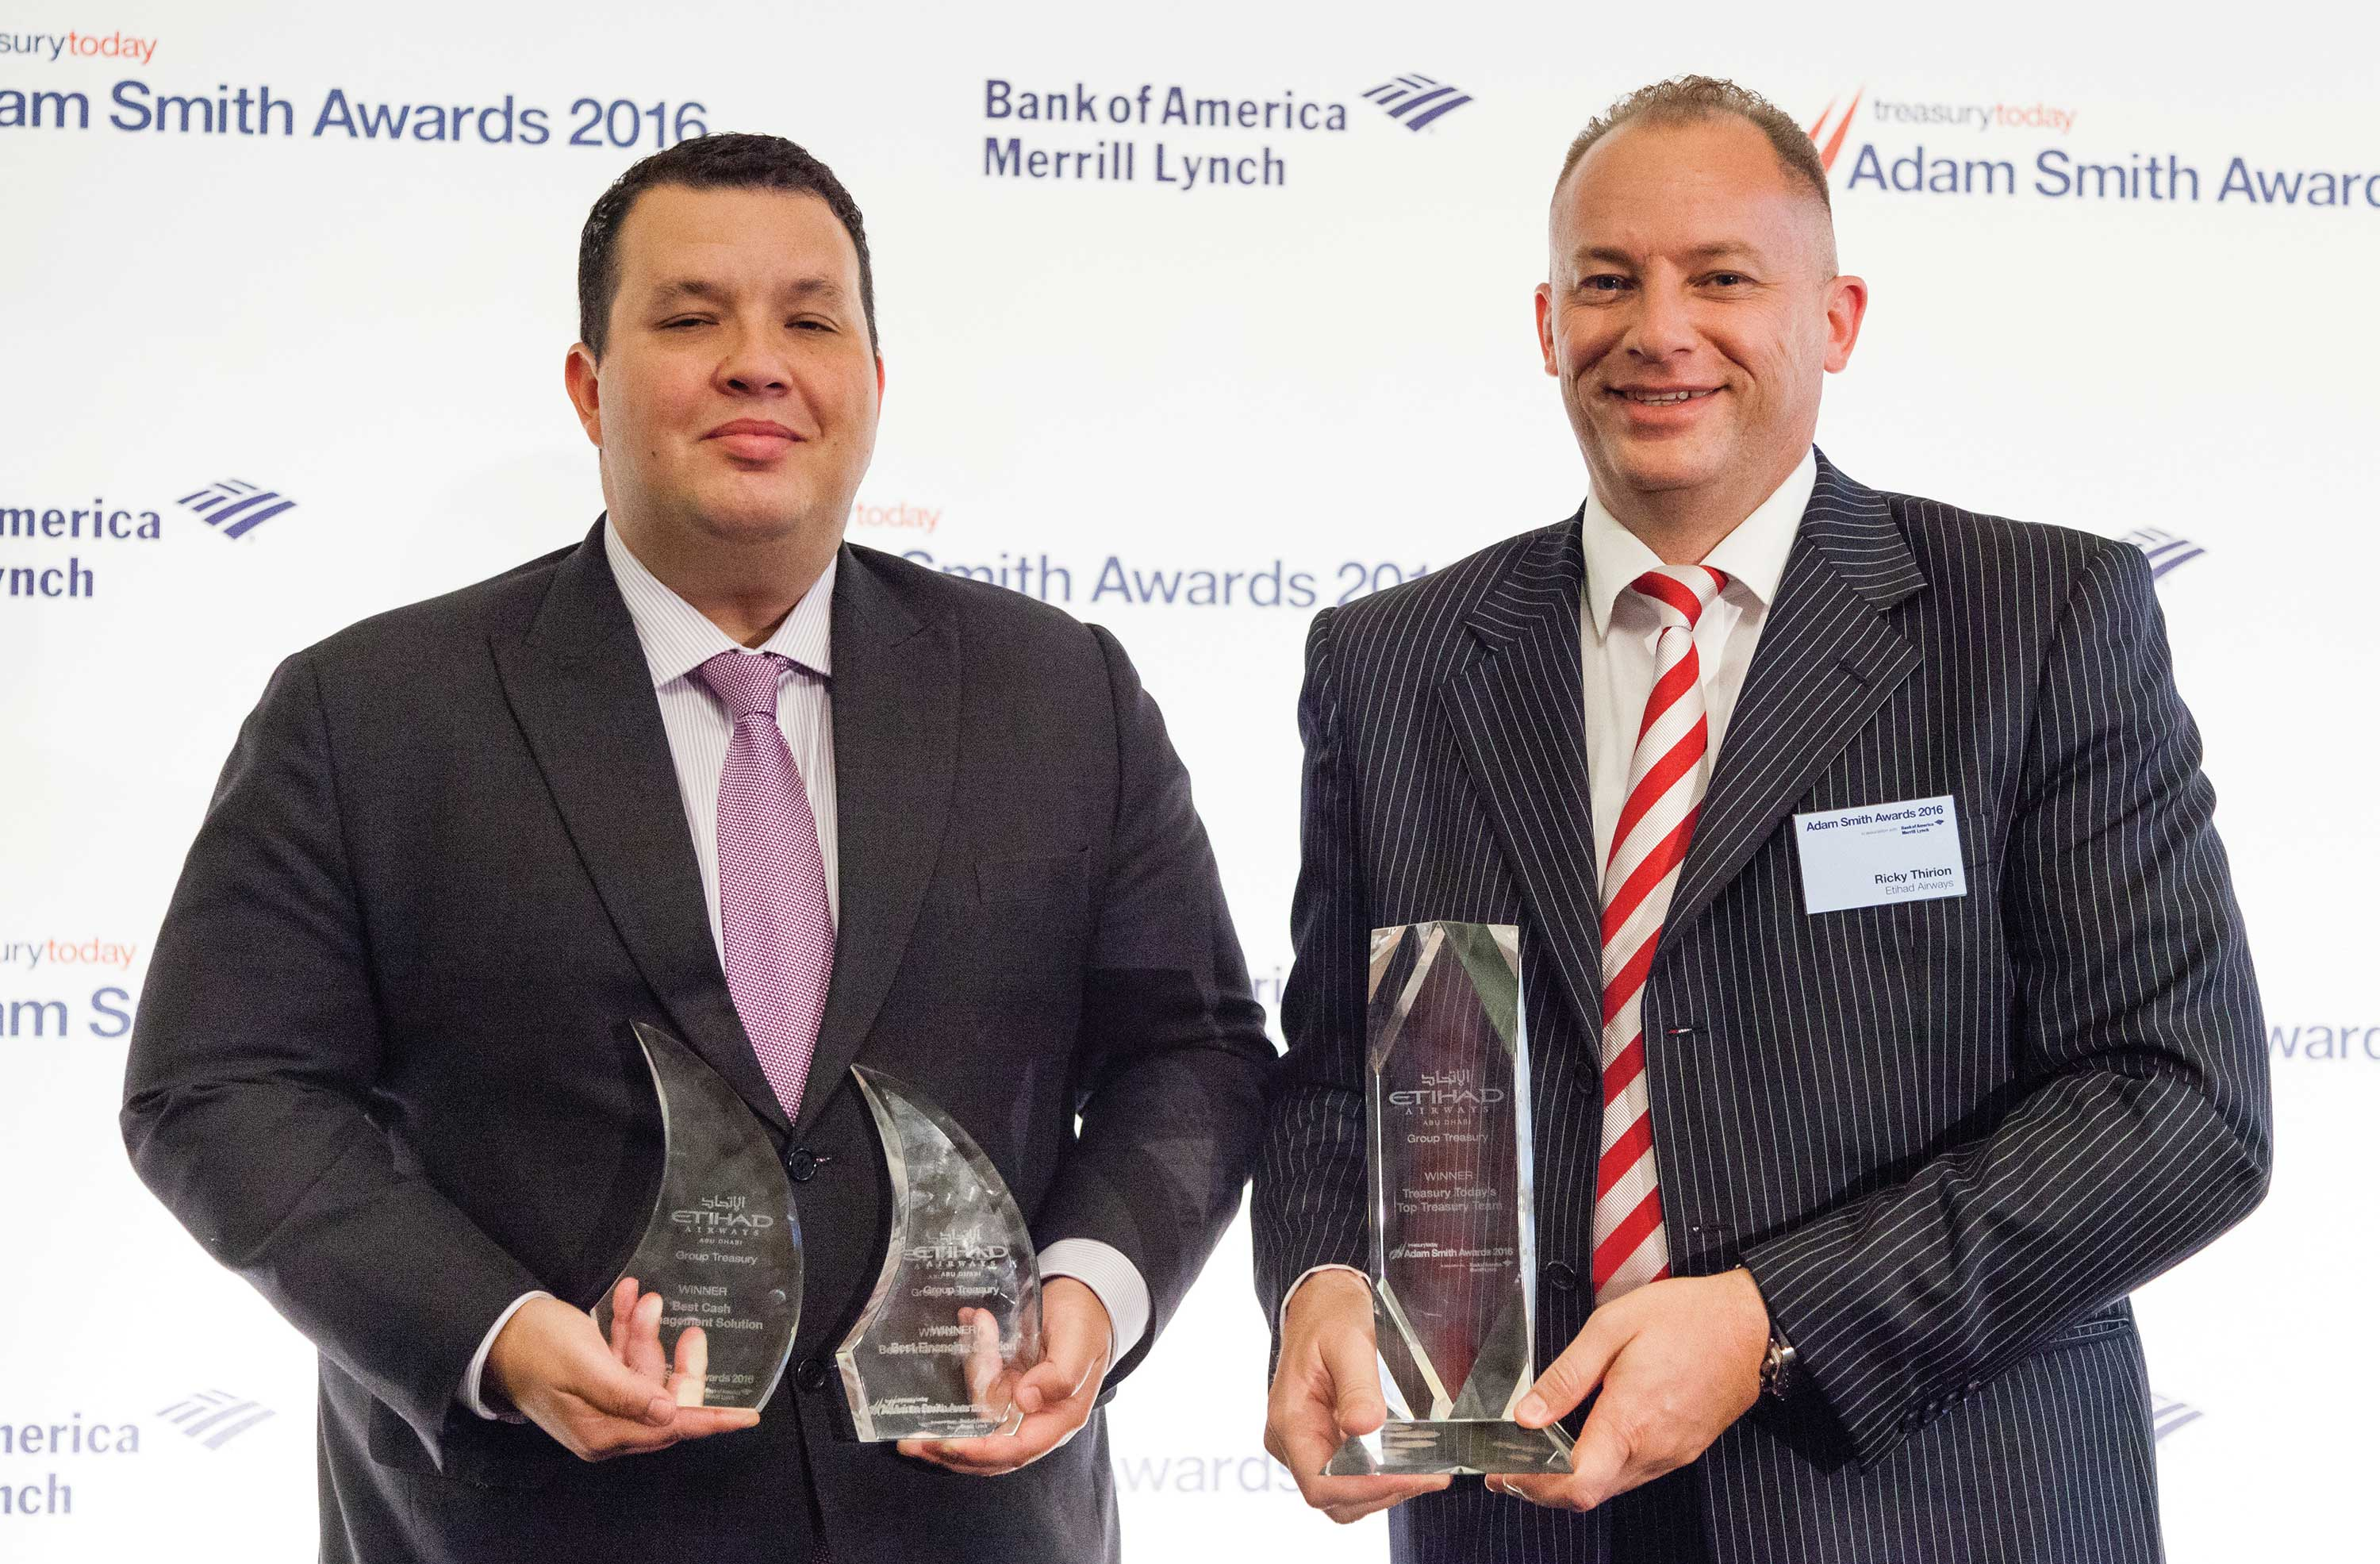 Treasury Today's Top Treasury Team 2016, Winner – Photo of Adam Ben Boukadida and Ricky Thirion, Etihad Airways.